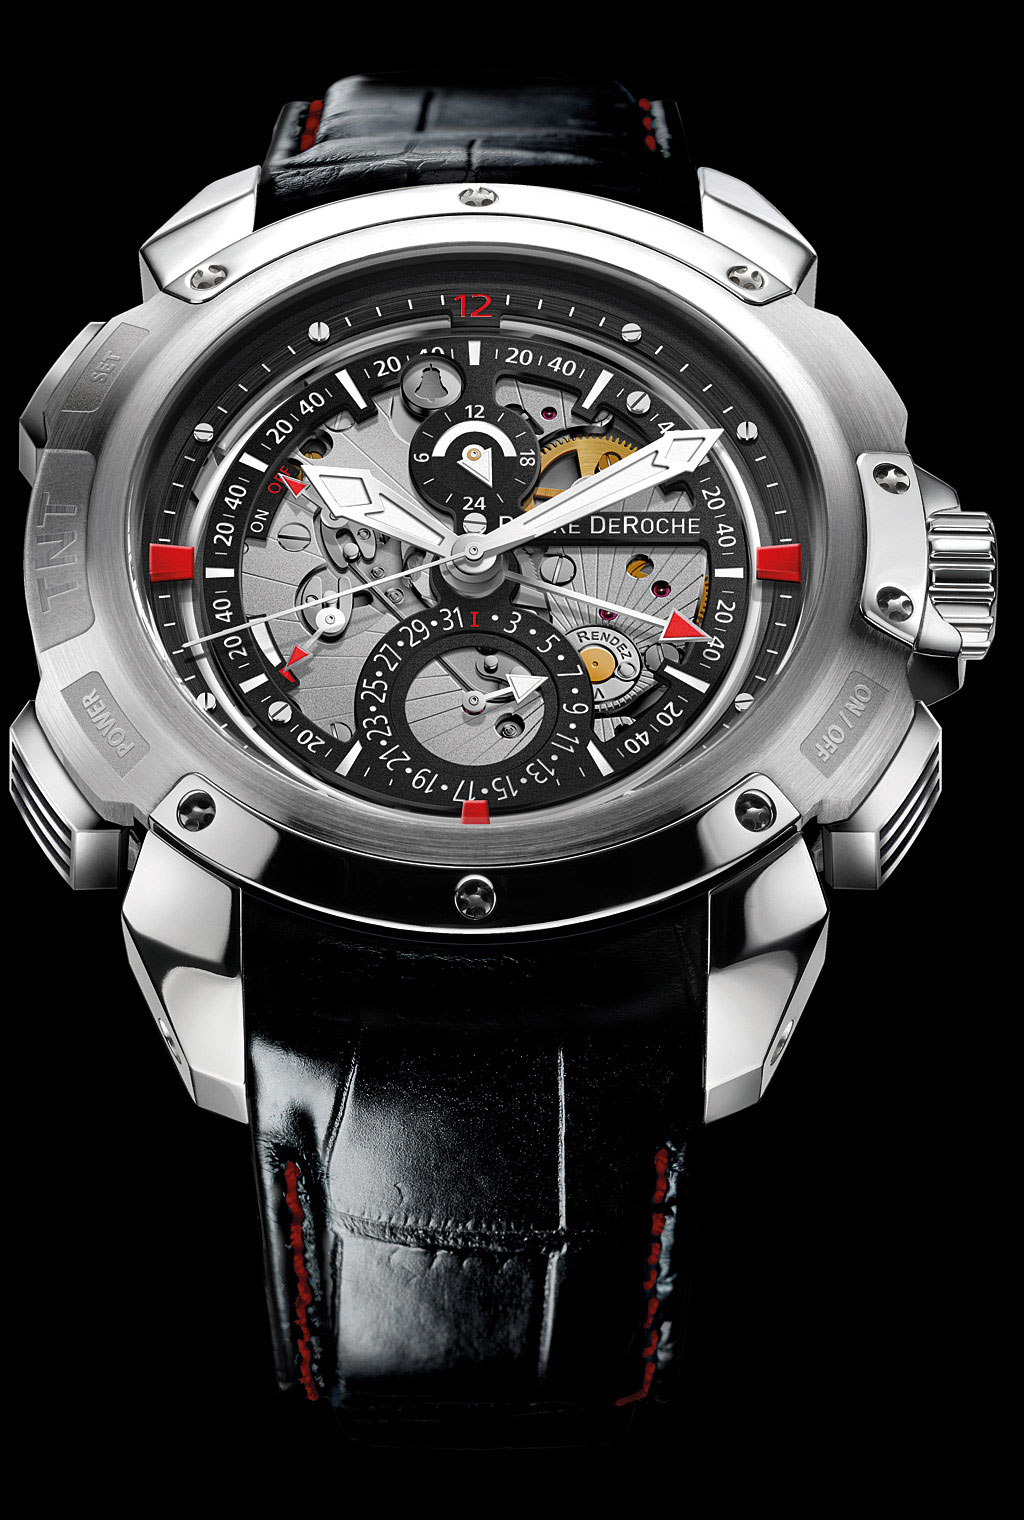 Pierre-DeRoche-TNT-RendezVous-Watch-3